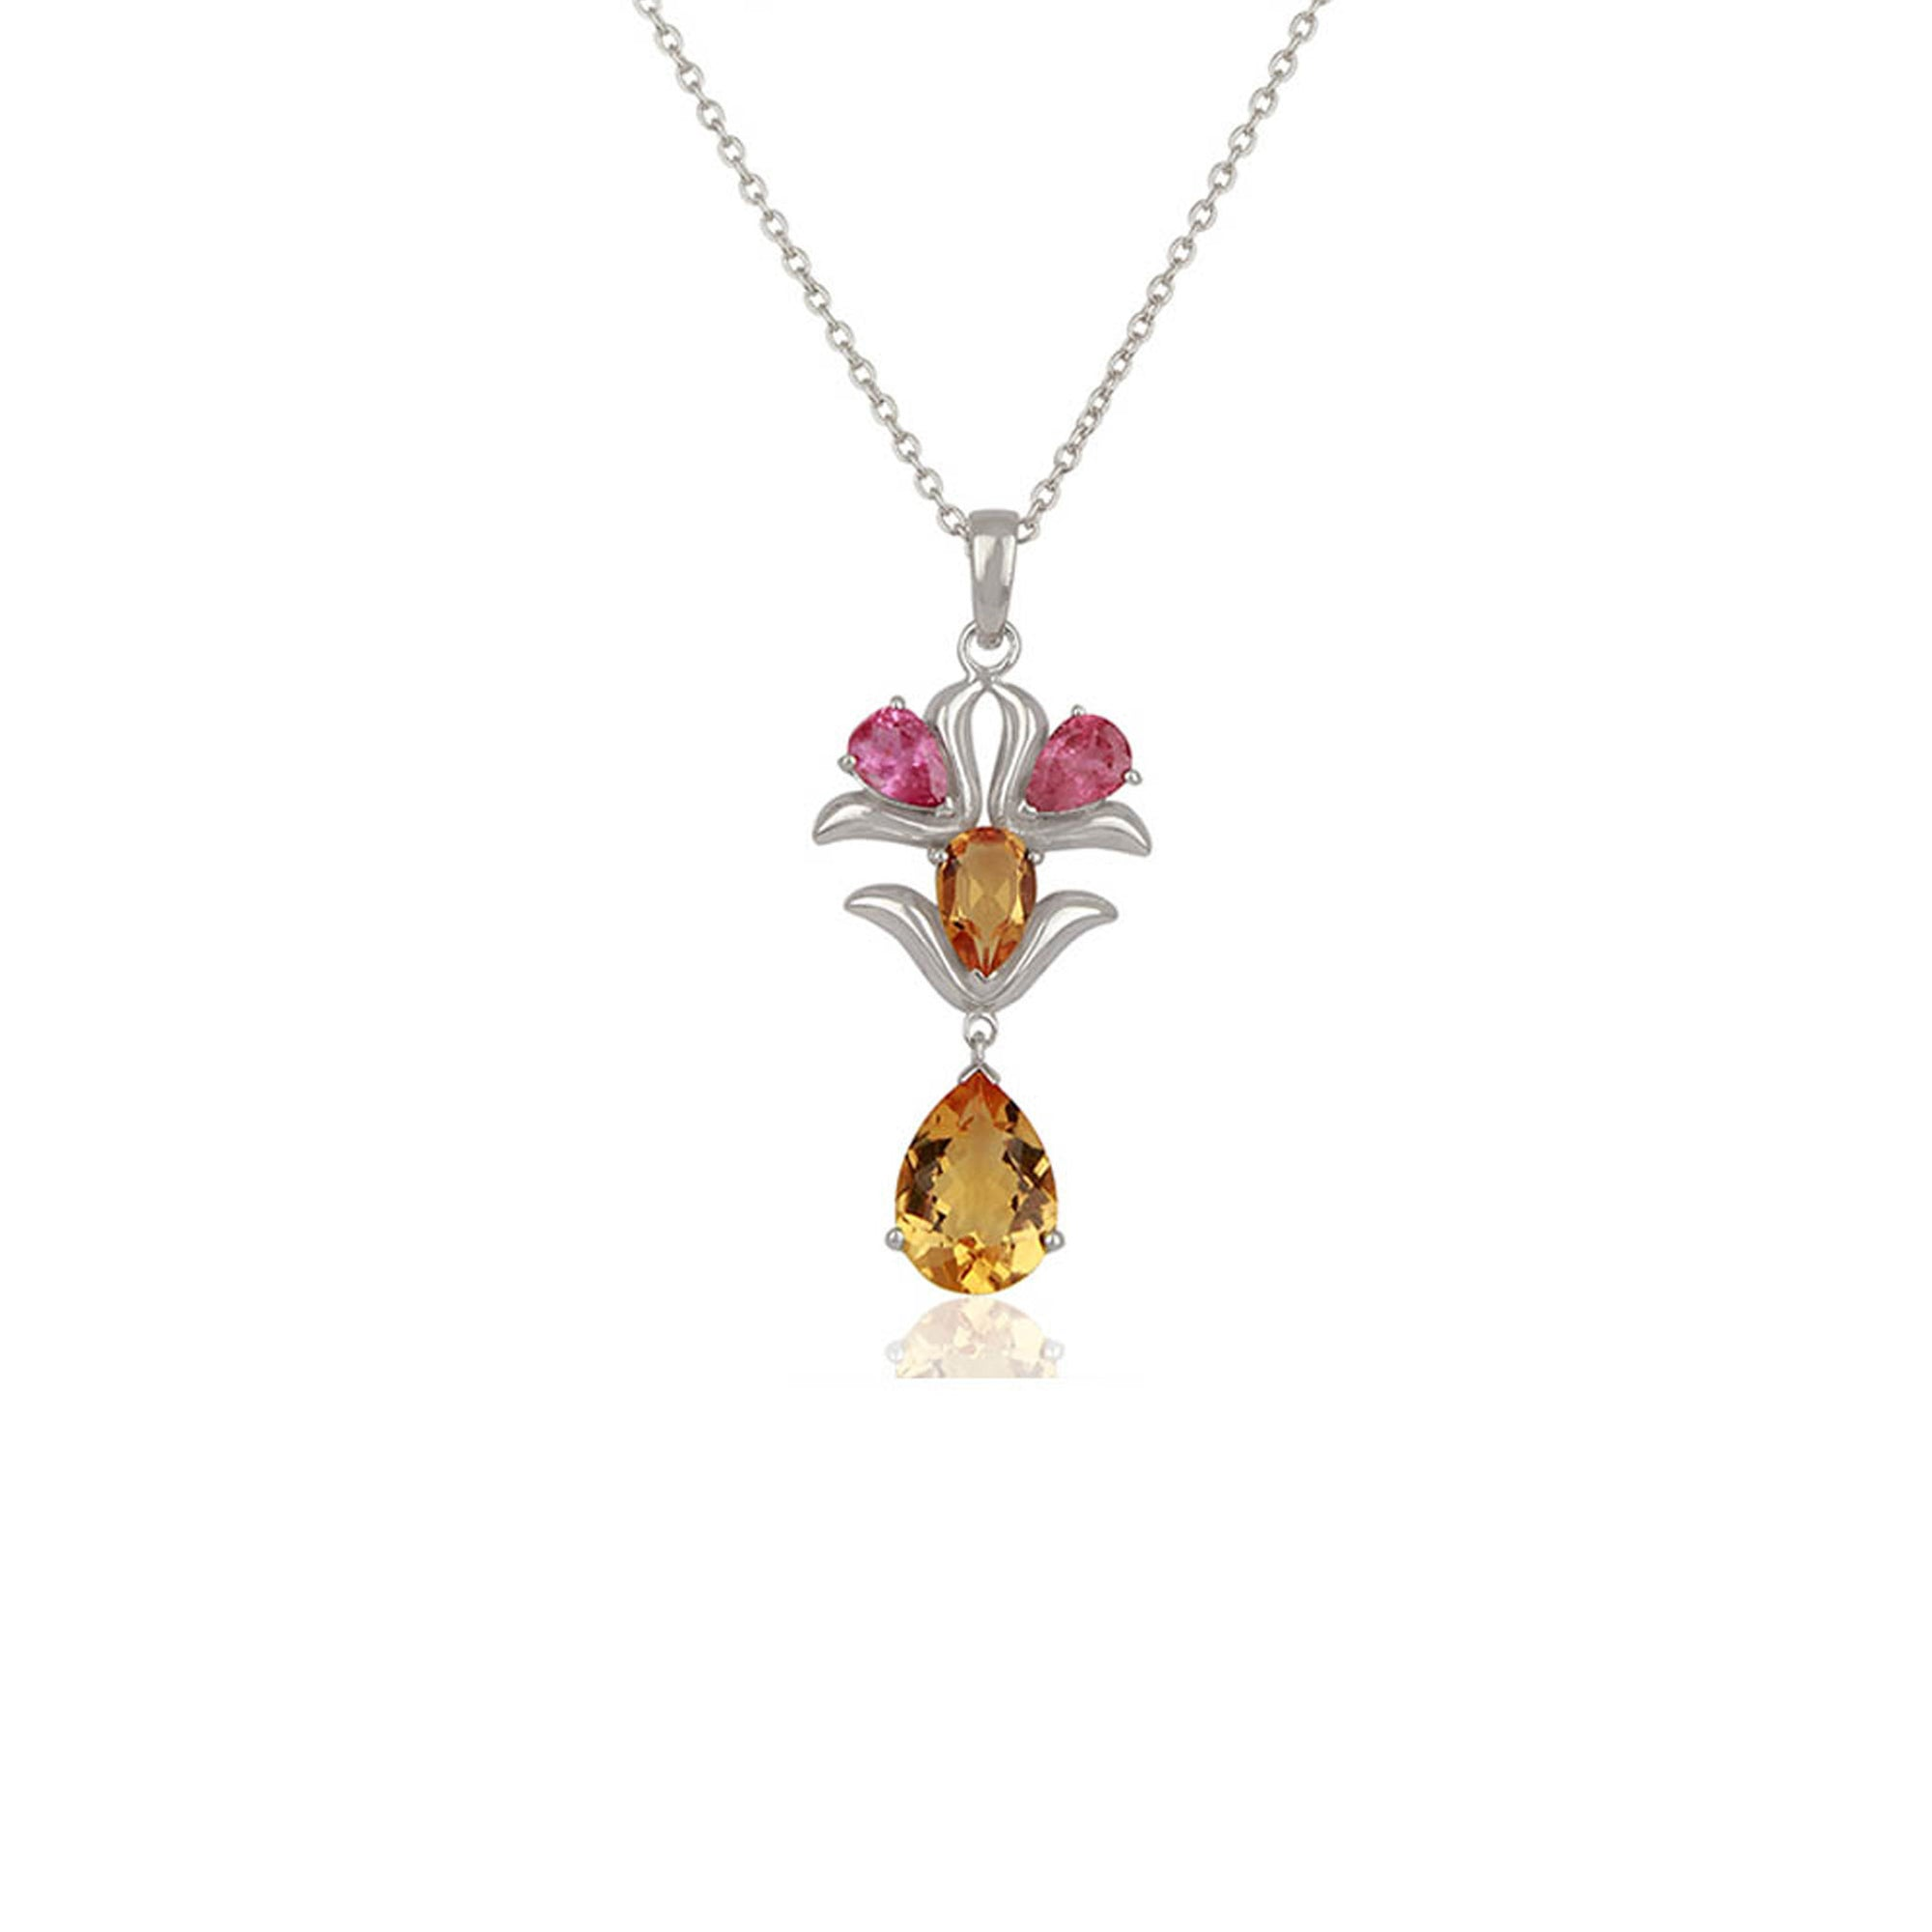 diamonds hkd in necklace with earrings pink tourmaline set pendant jewellery gold couture photoshoot certificate and jw